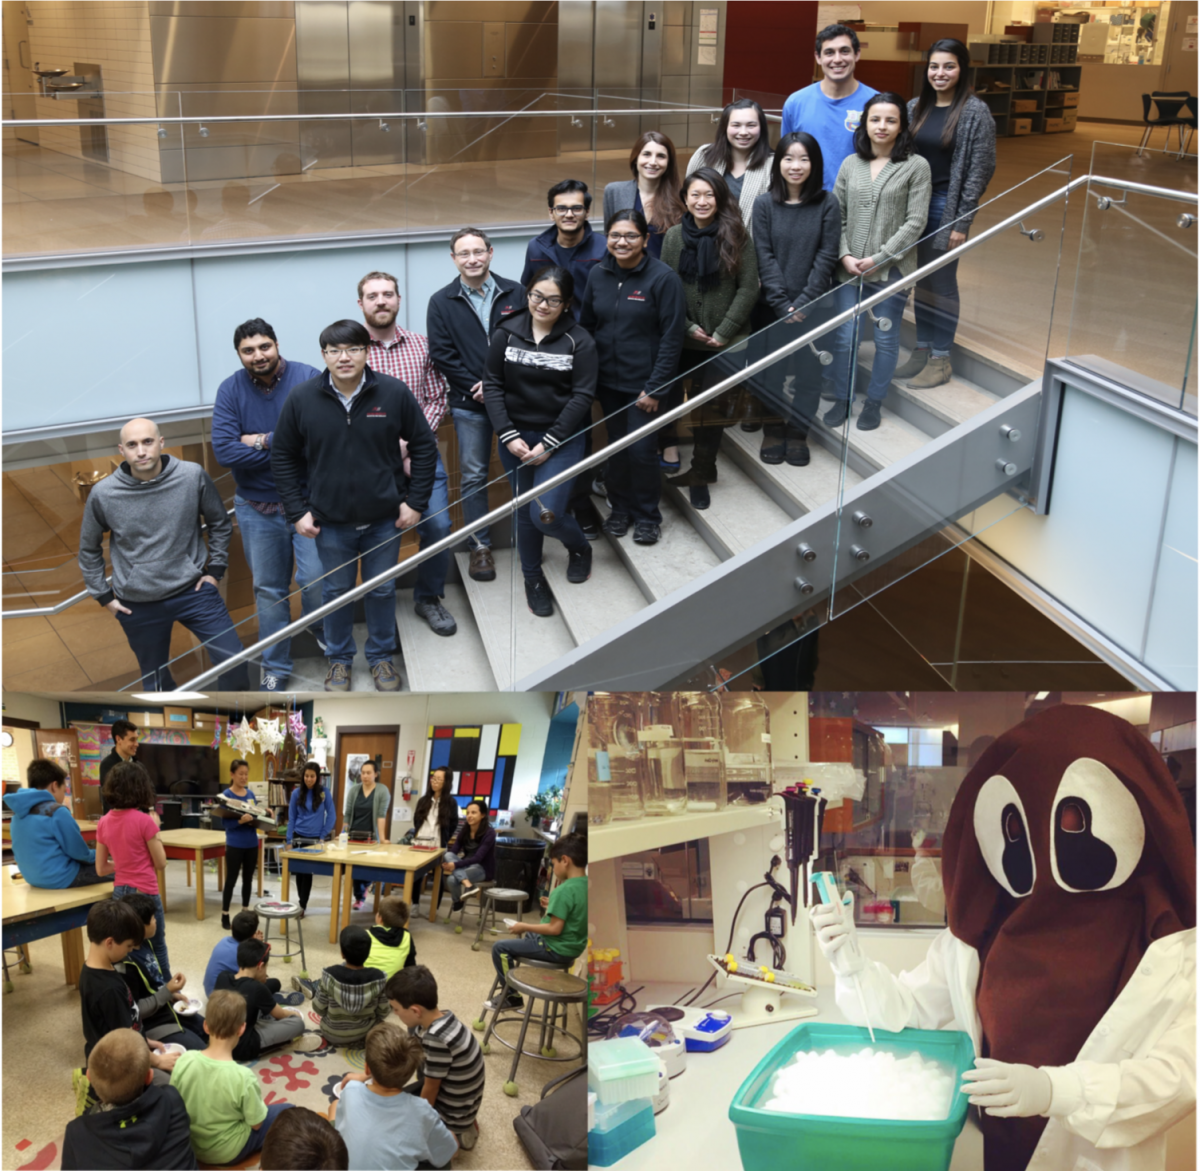 Top, members of the Newmark lab. Bottom left, members of the lab at a local elementary school talking about planarians. Bottom right, lab mascot, Schmidty, aliquoting cells.